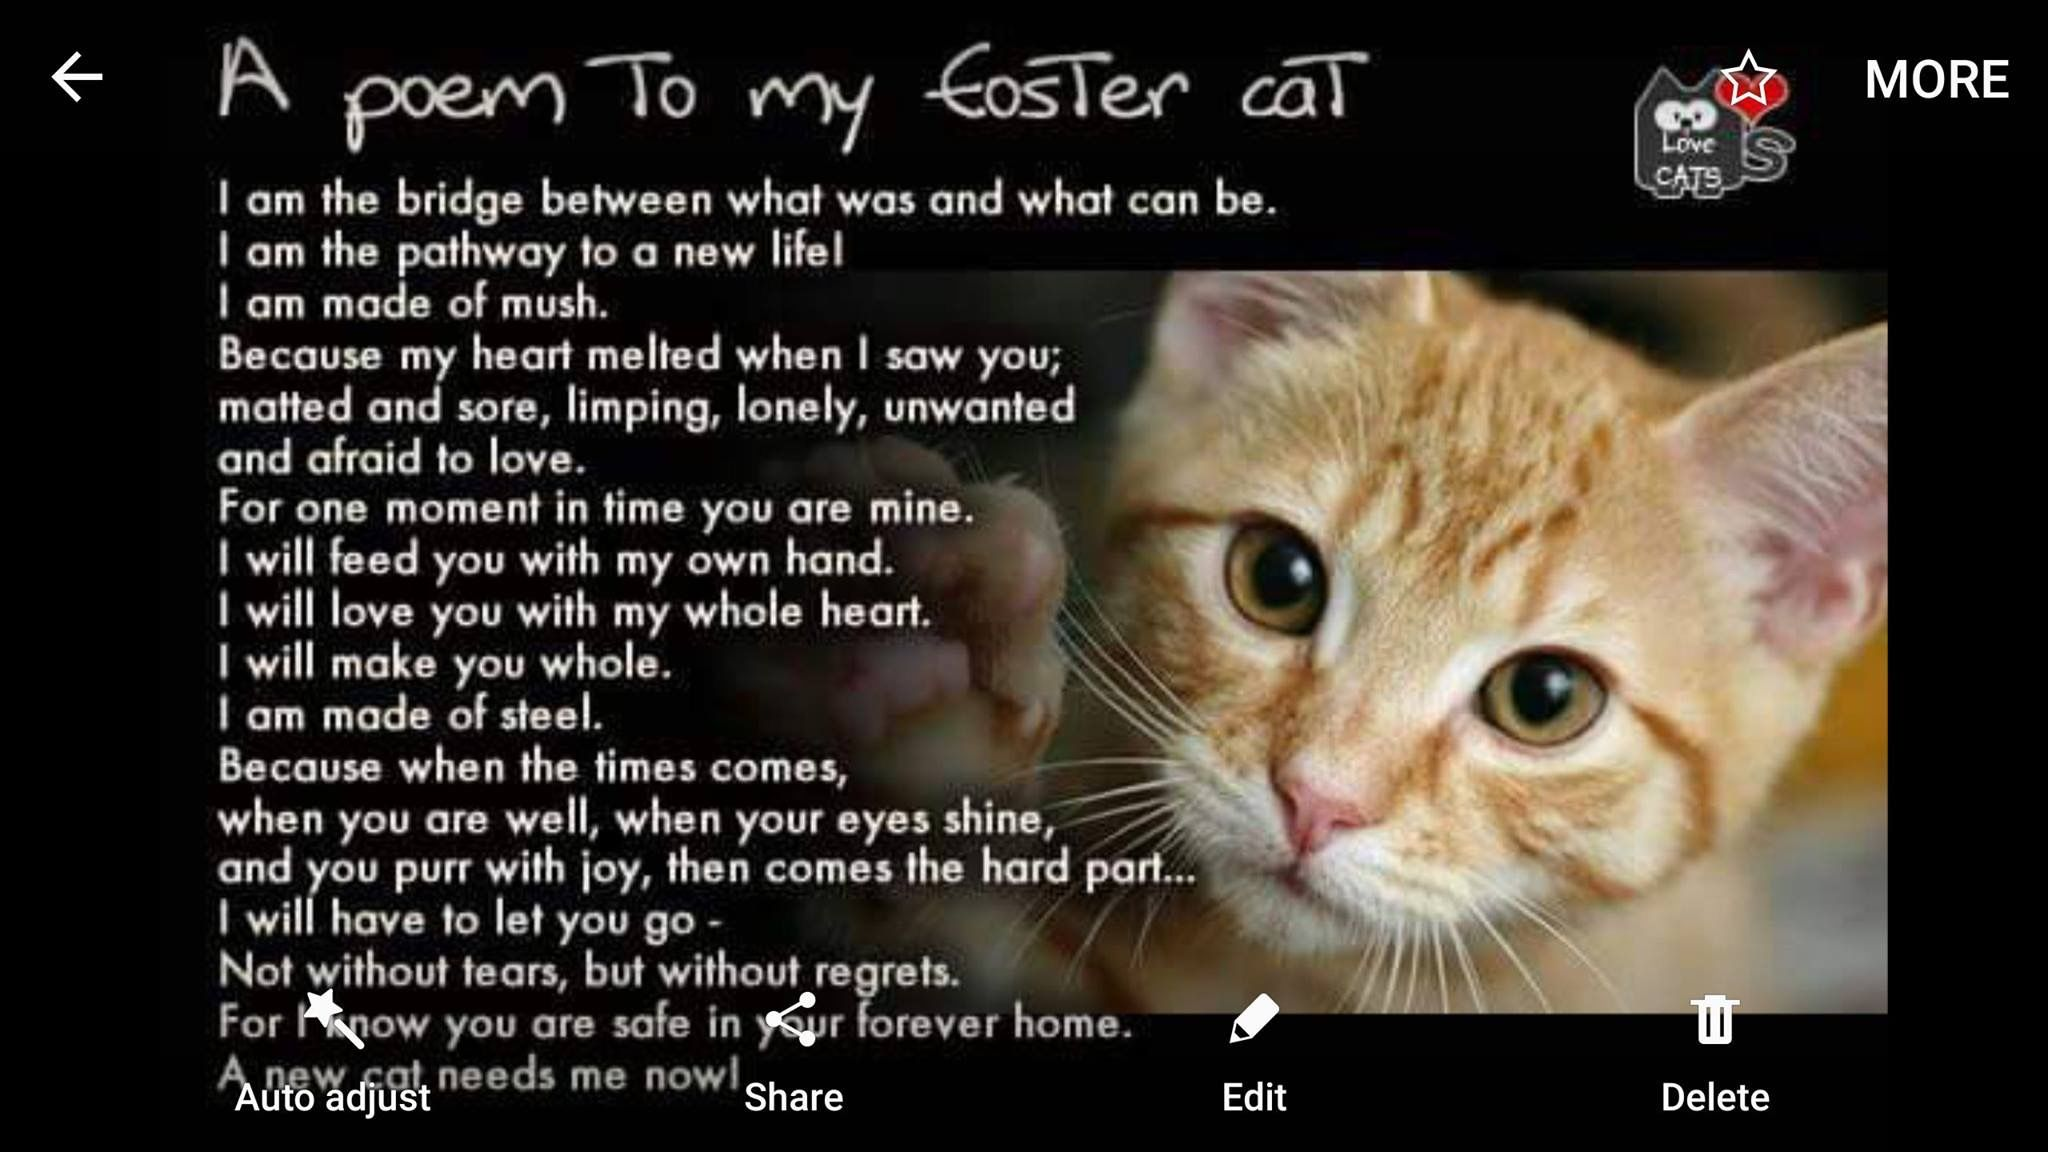 Pin By Tricia Narma On Foxyfarms Foster Cat Cat Poems The Fosters